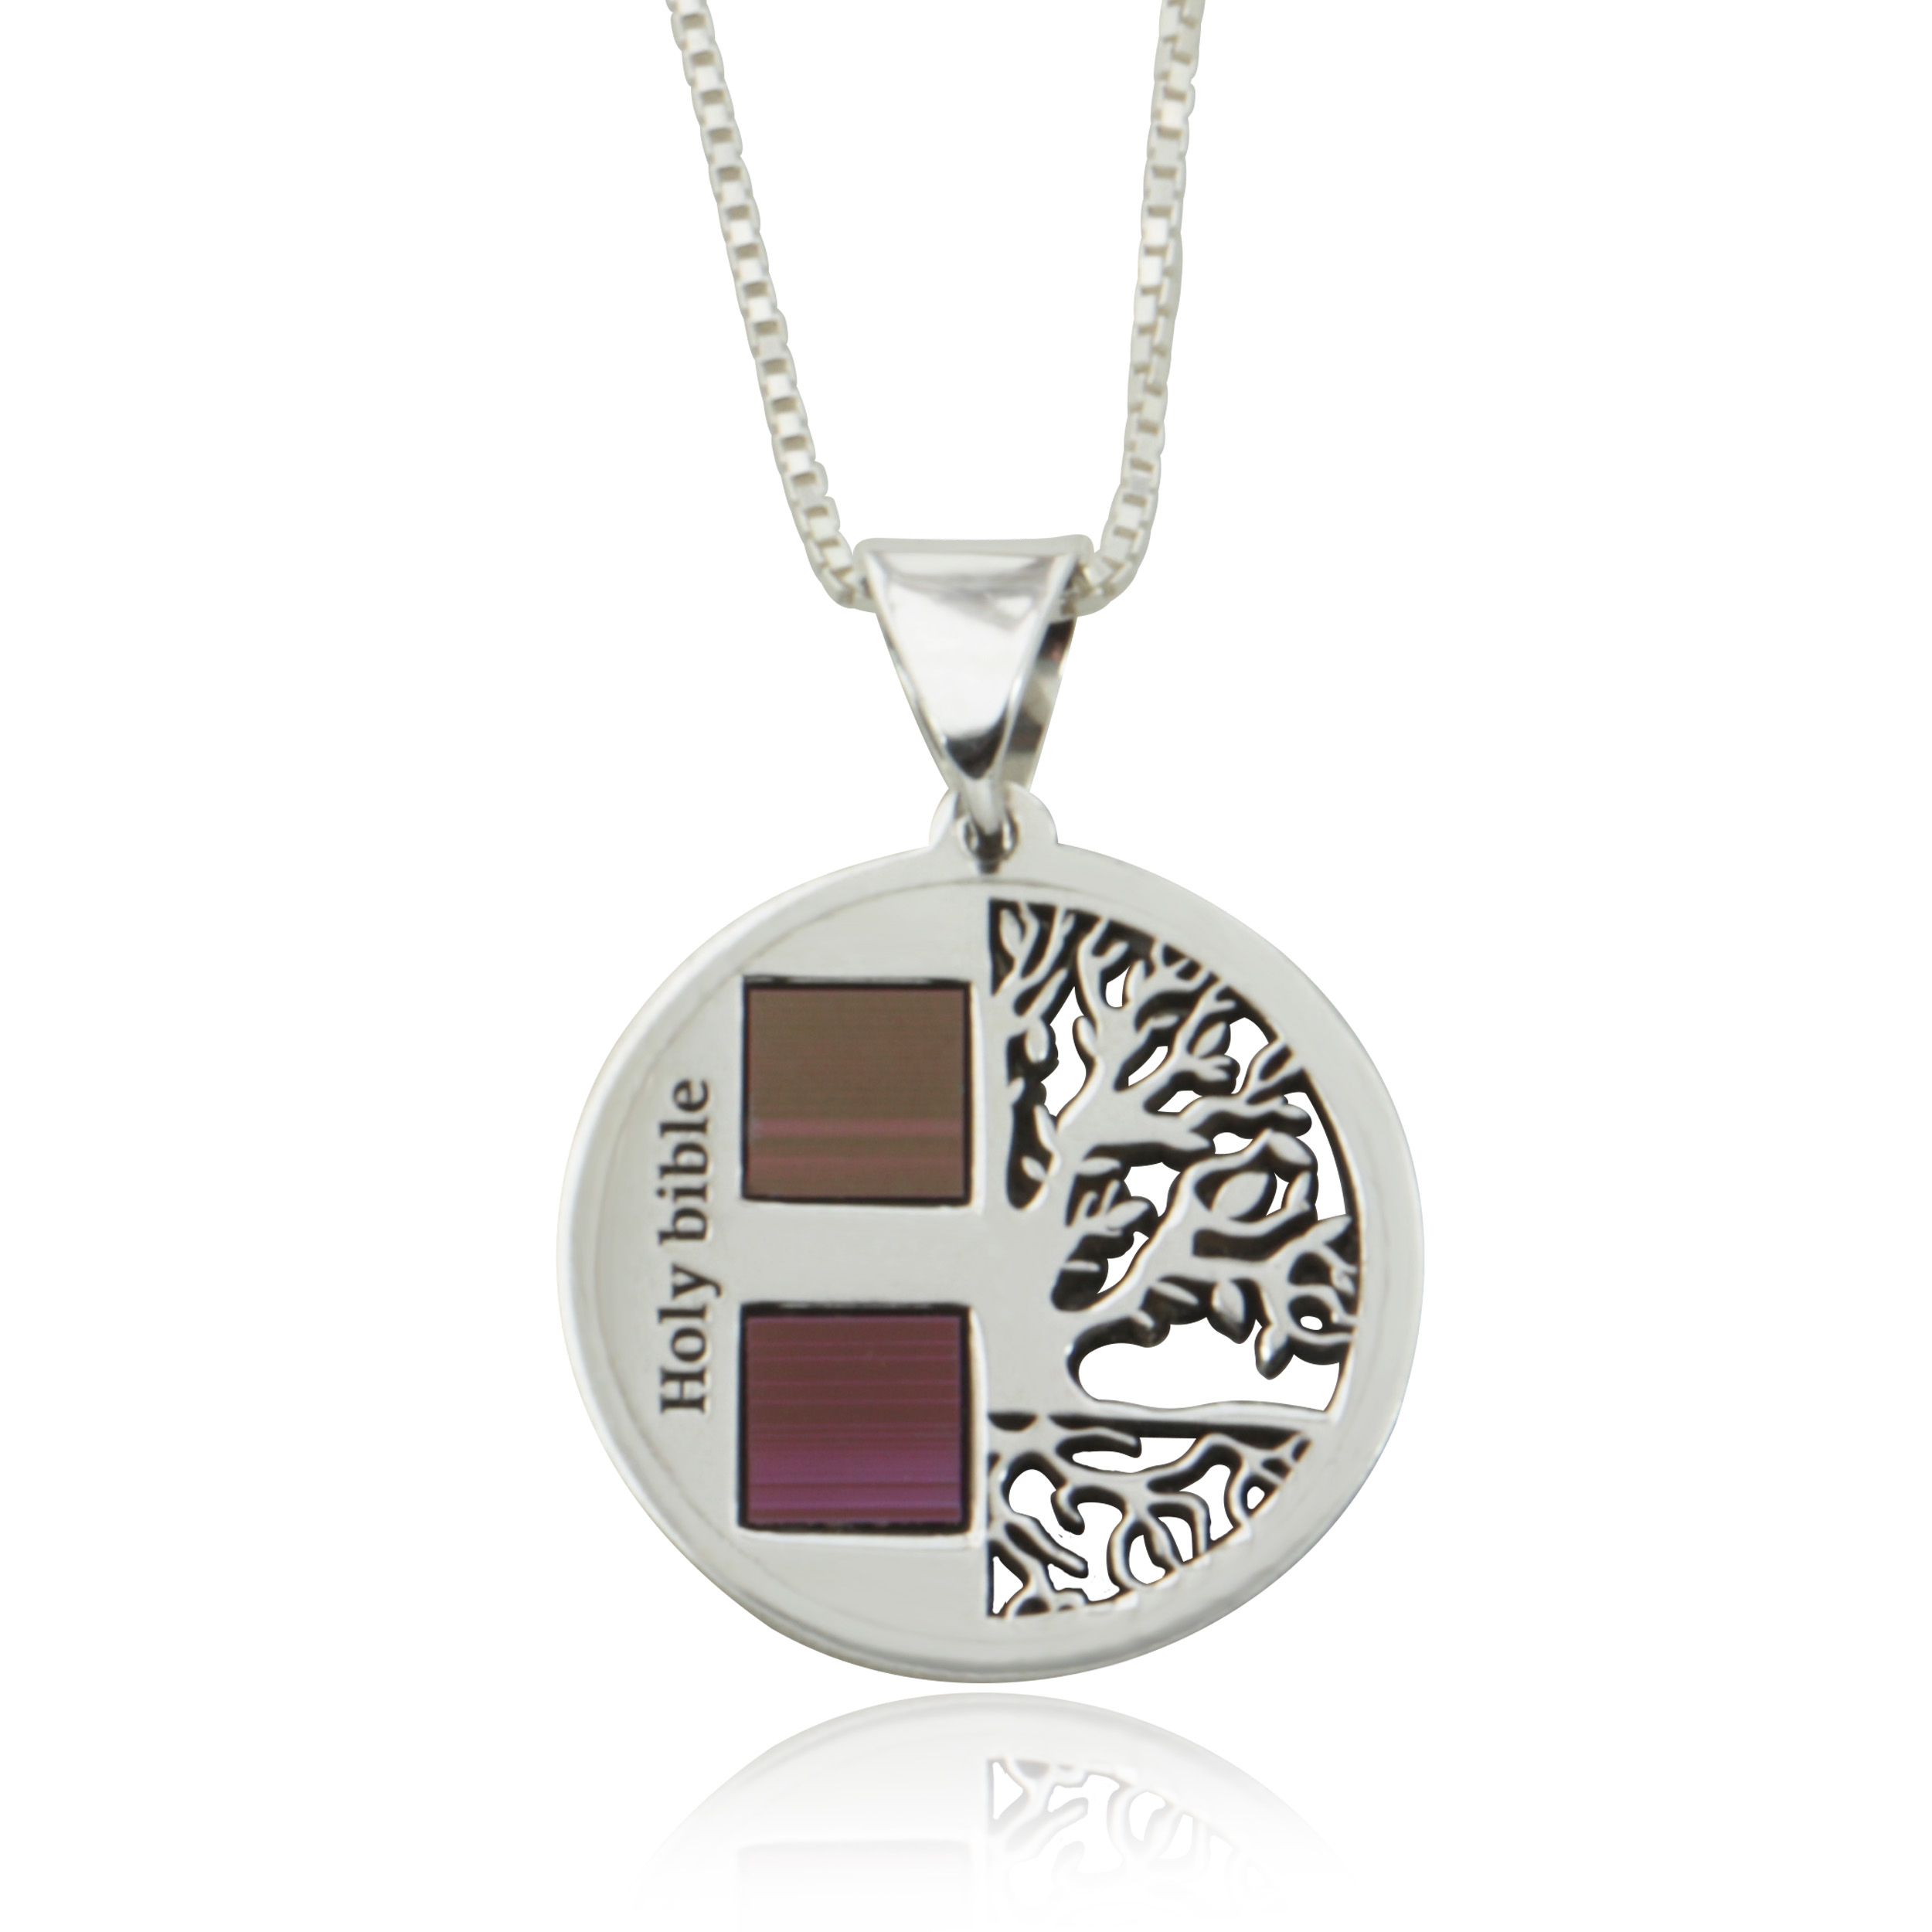 THE TREE OF LIFE NECKLACE HOLY BIBLE